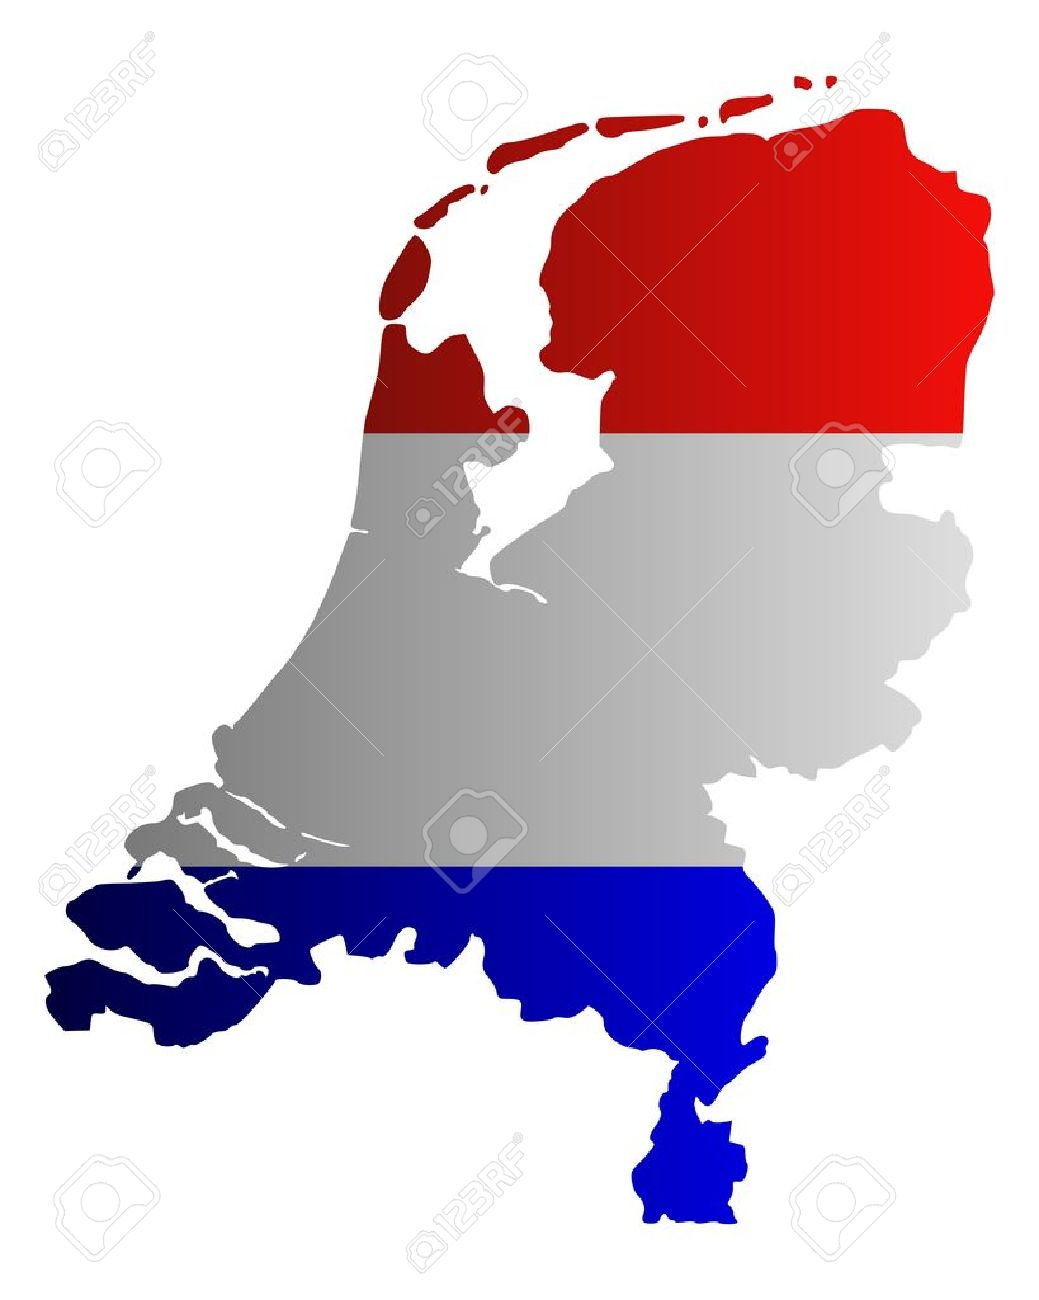 Map and flag of the Netherlands - 12932842